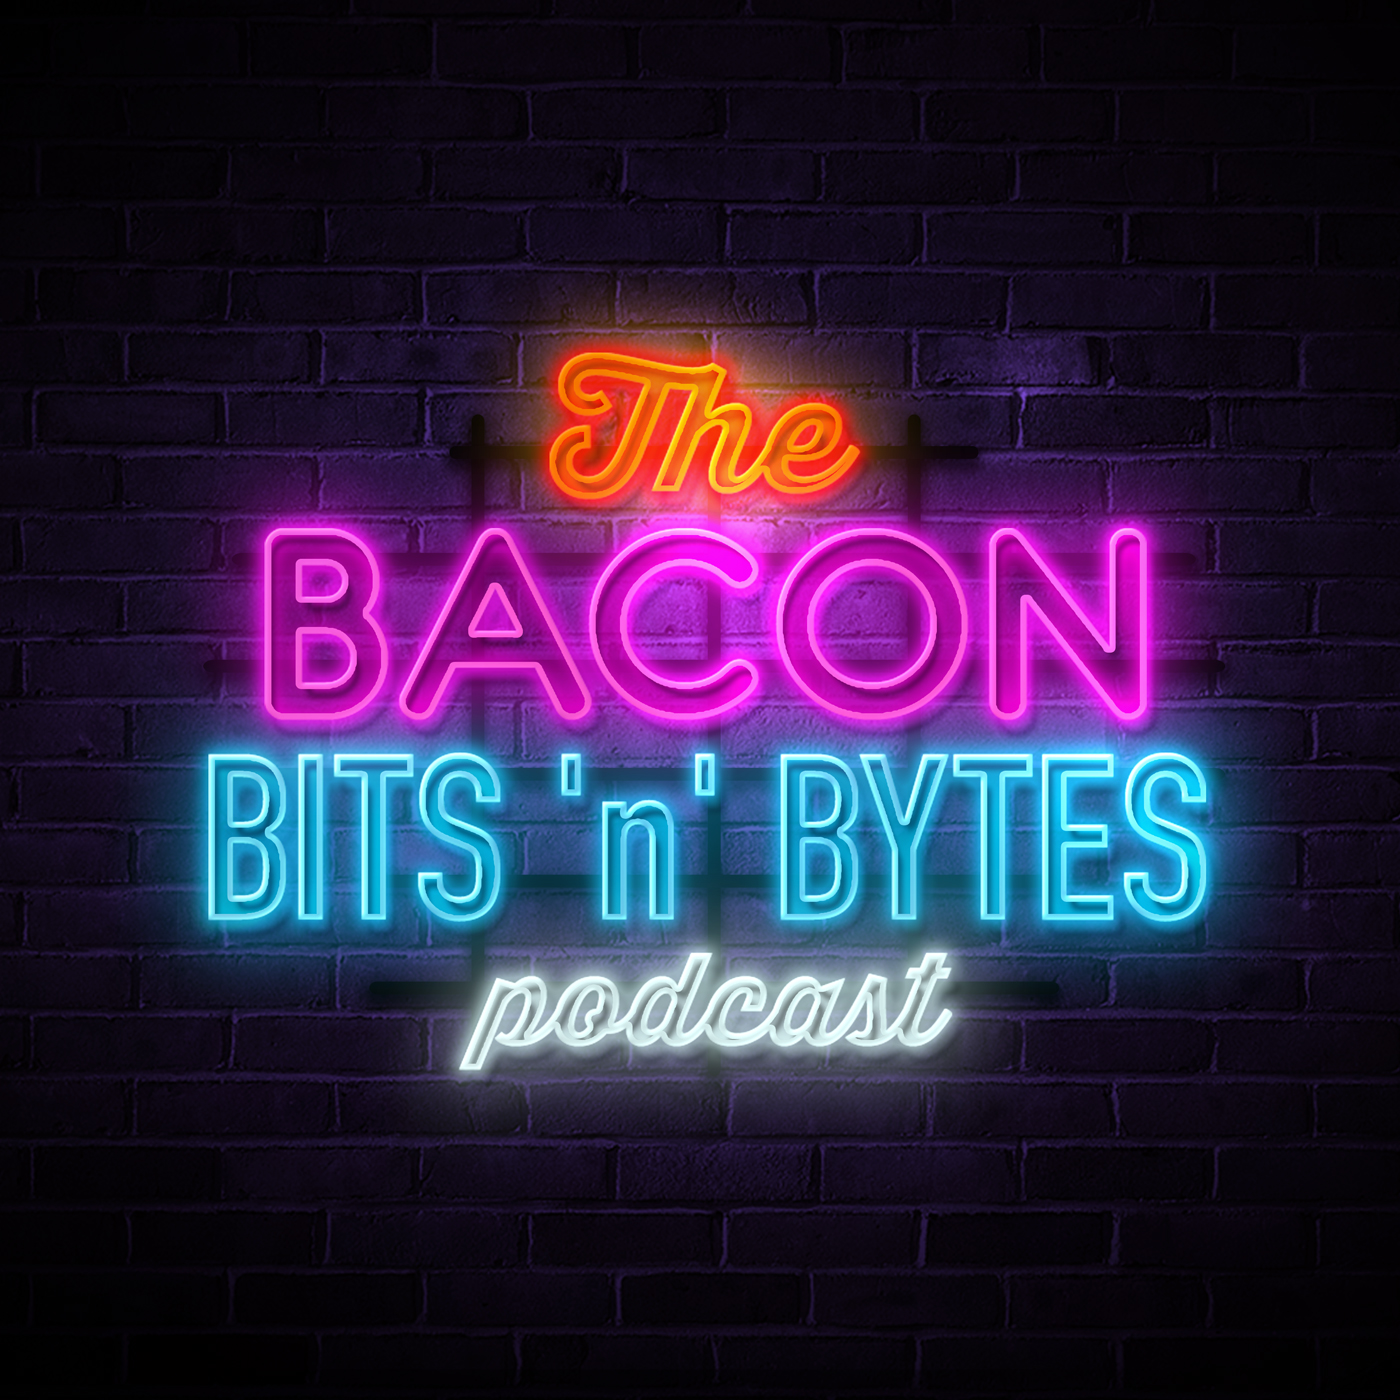 The Bacon Bits 'n' Bytes Podcast show art